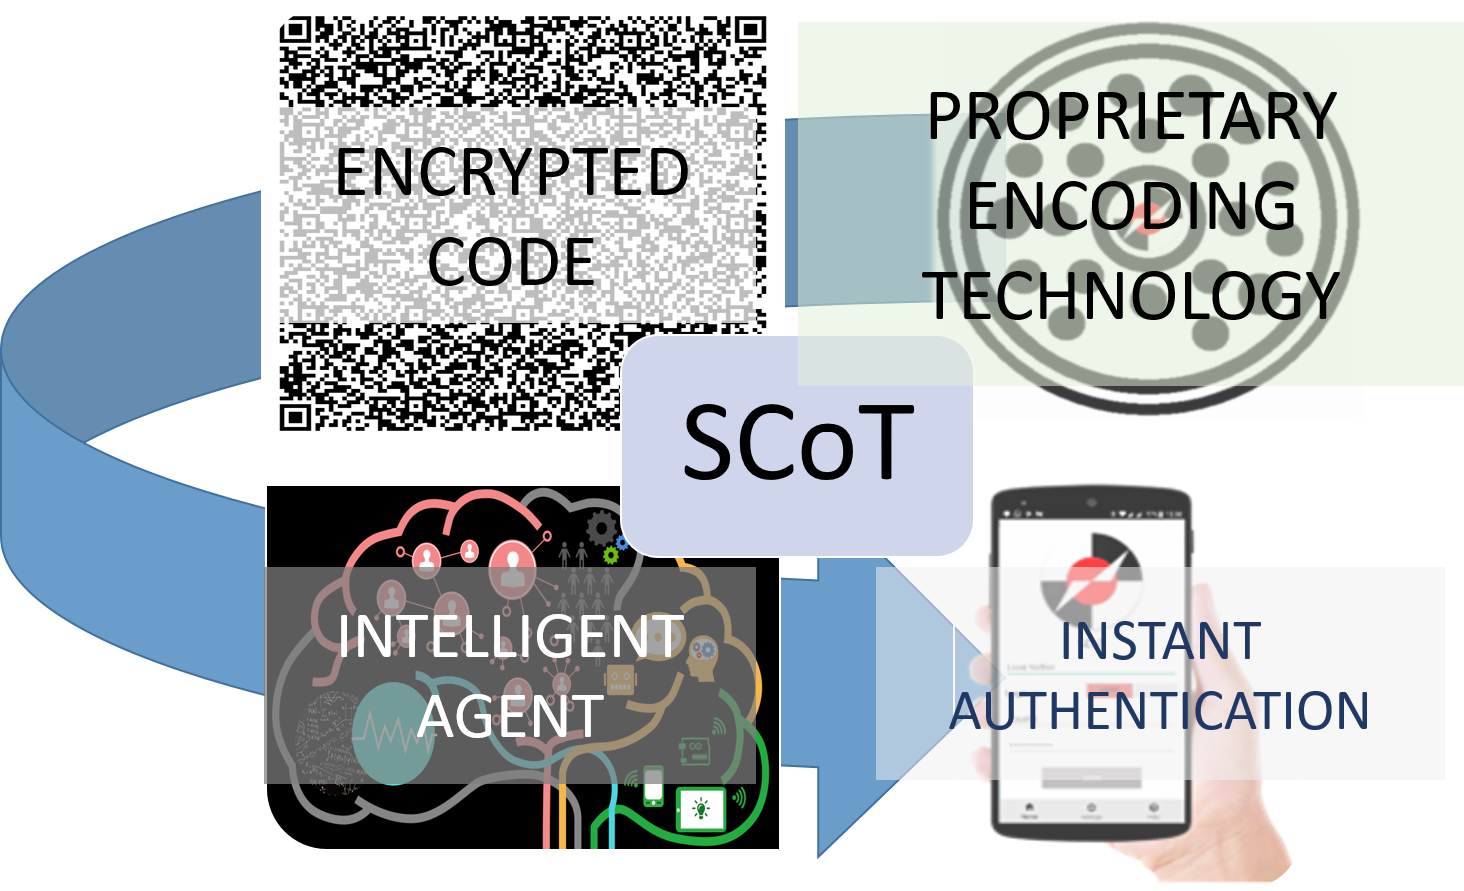 Multi Factor Digital Packaging Security Technology